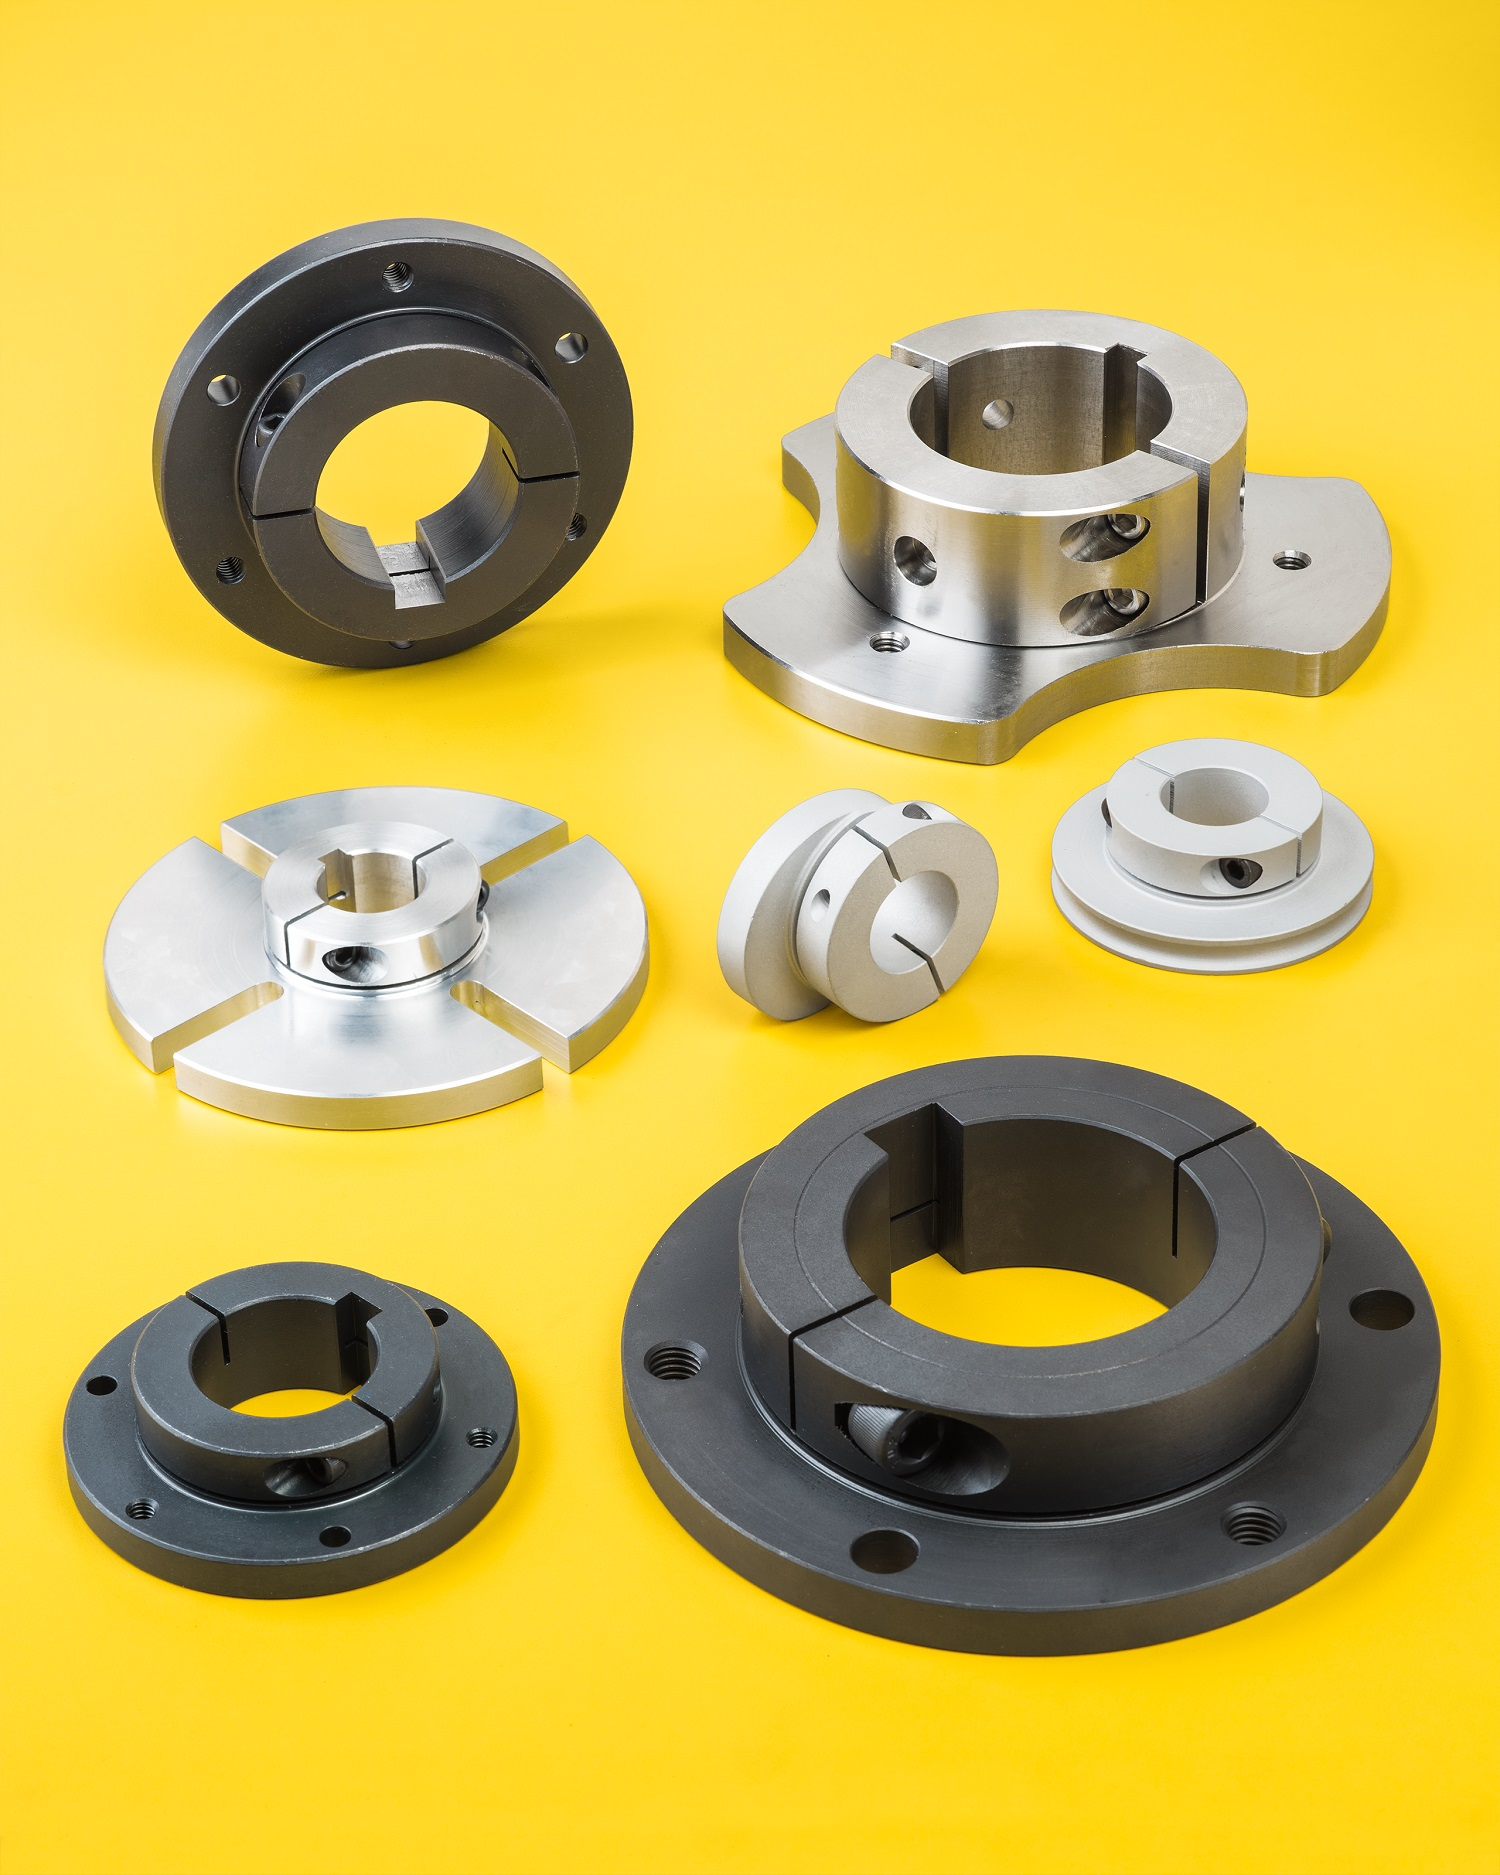 Flanged one piece shaft collars enhance user mounting